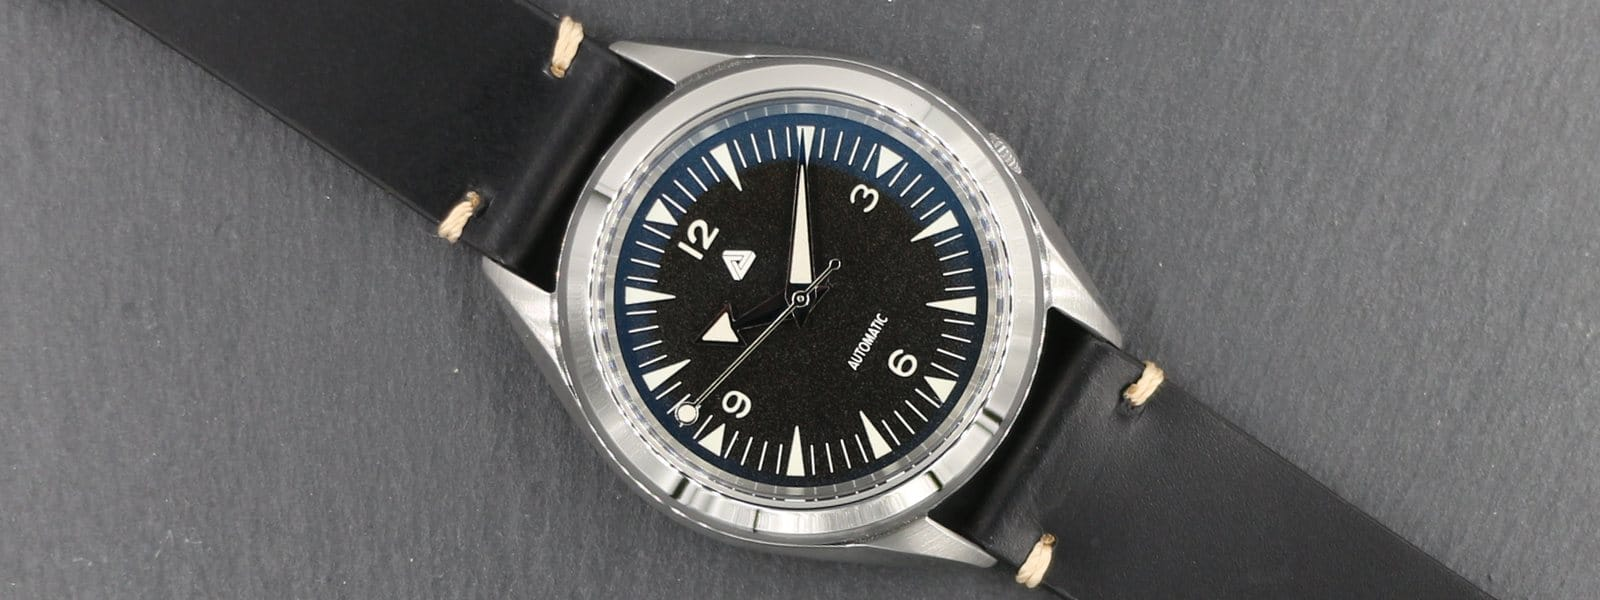 Seiko SNKL23 modified with (i) BGW9 Nautical Explorer Dial, (ii) BGW9 Polished Silver Broad Arrow Hands, (iii) Double Sided Blue AR Sapphire Crystal on (iv) Black Vintage Italian Calf Leather Strap